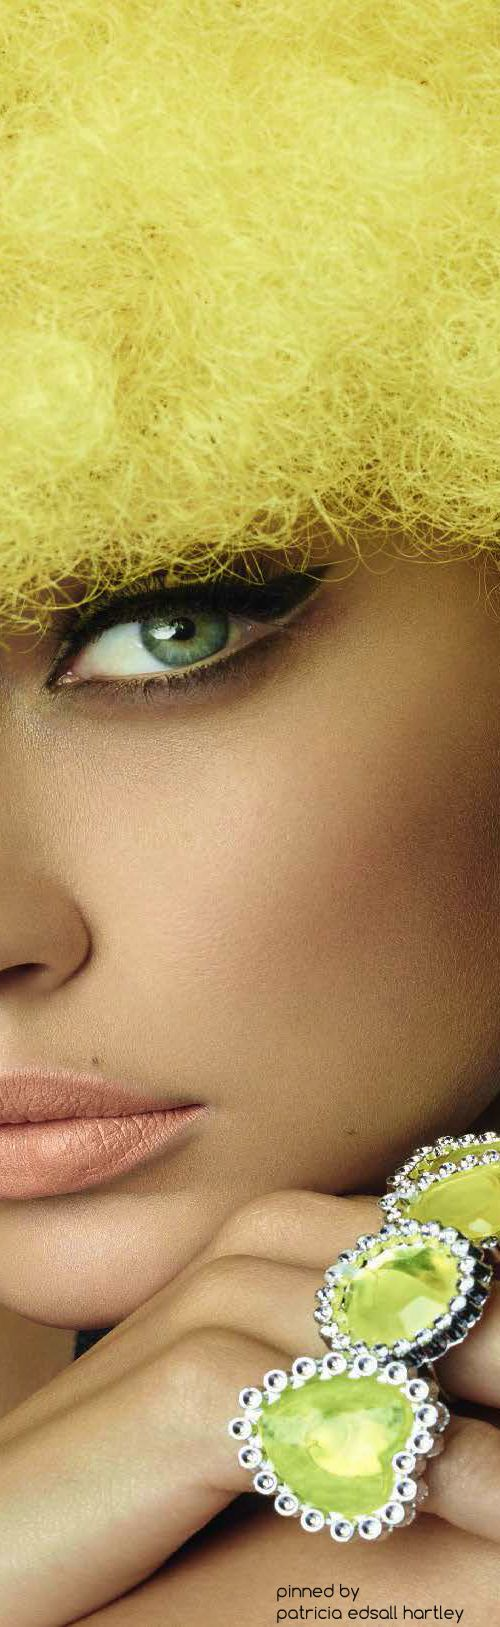 Publication: Vogue Italia November 2015 Model: Gigi Hadid Photographer: Steven Meisel